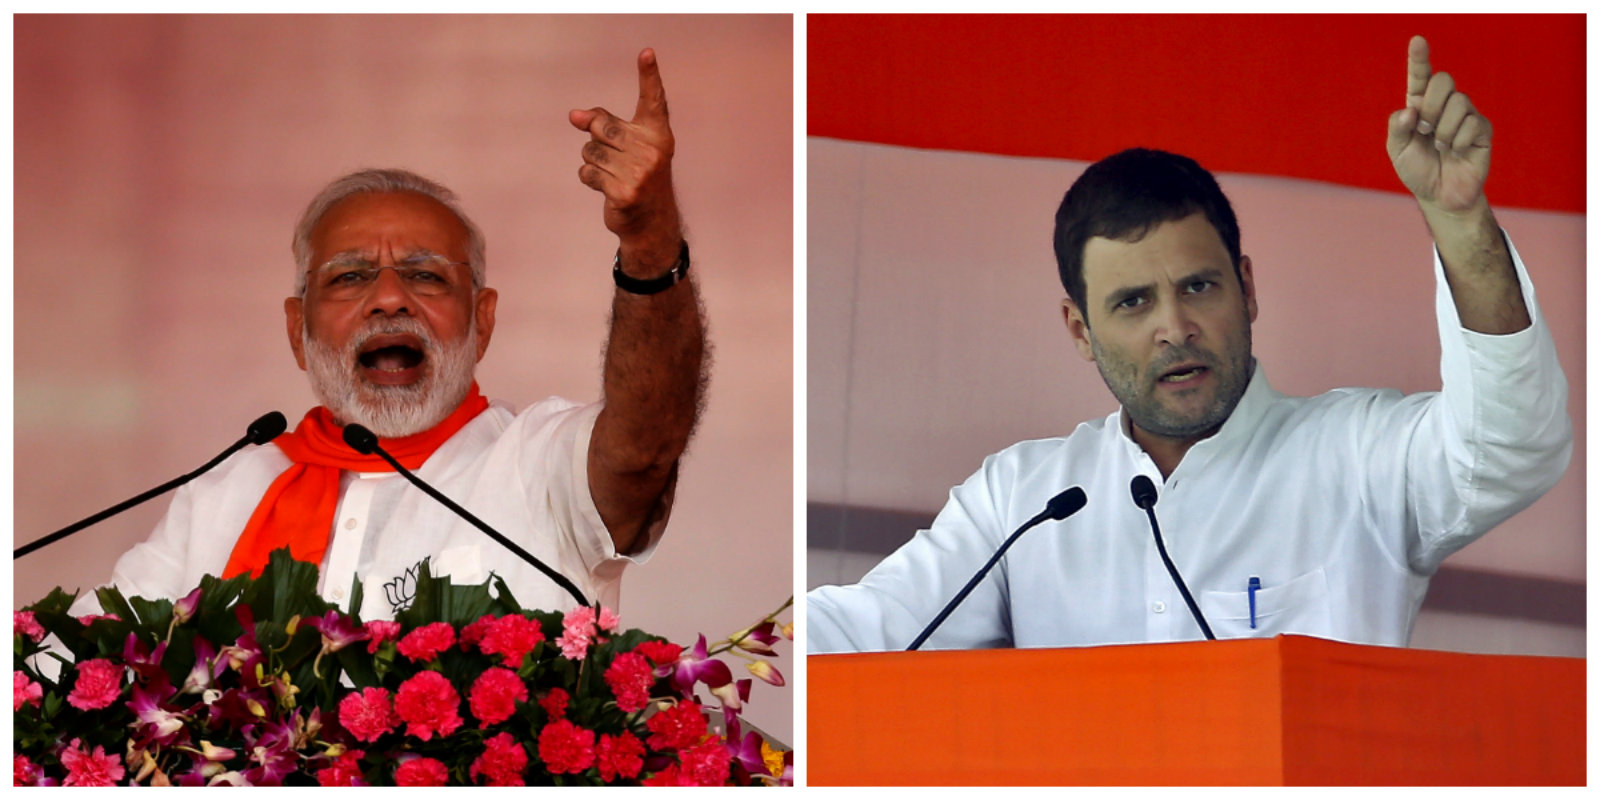 Narendra Modi addressing a rally near Ahmedabad. (R) Rahul Gandhi at another rally.